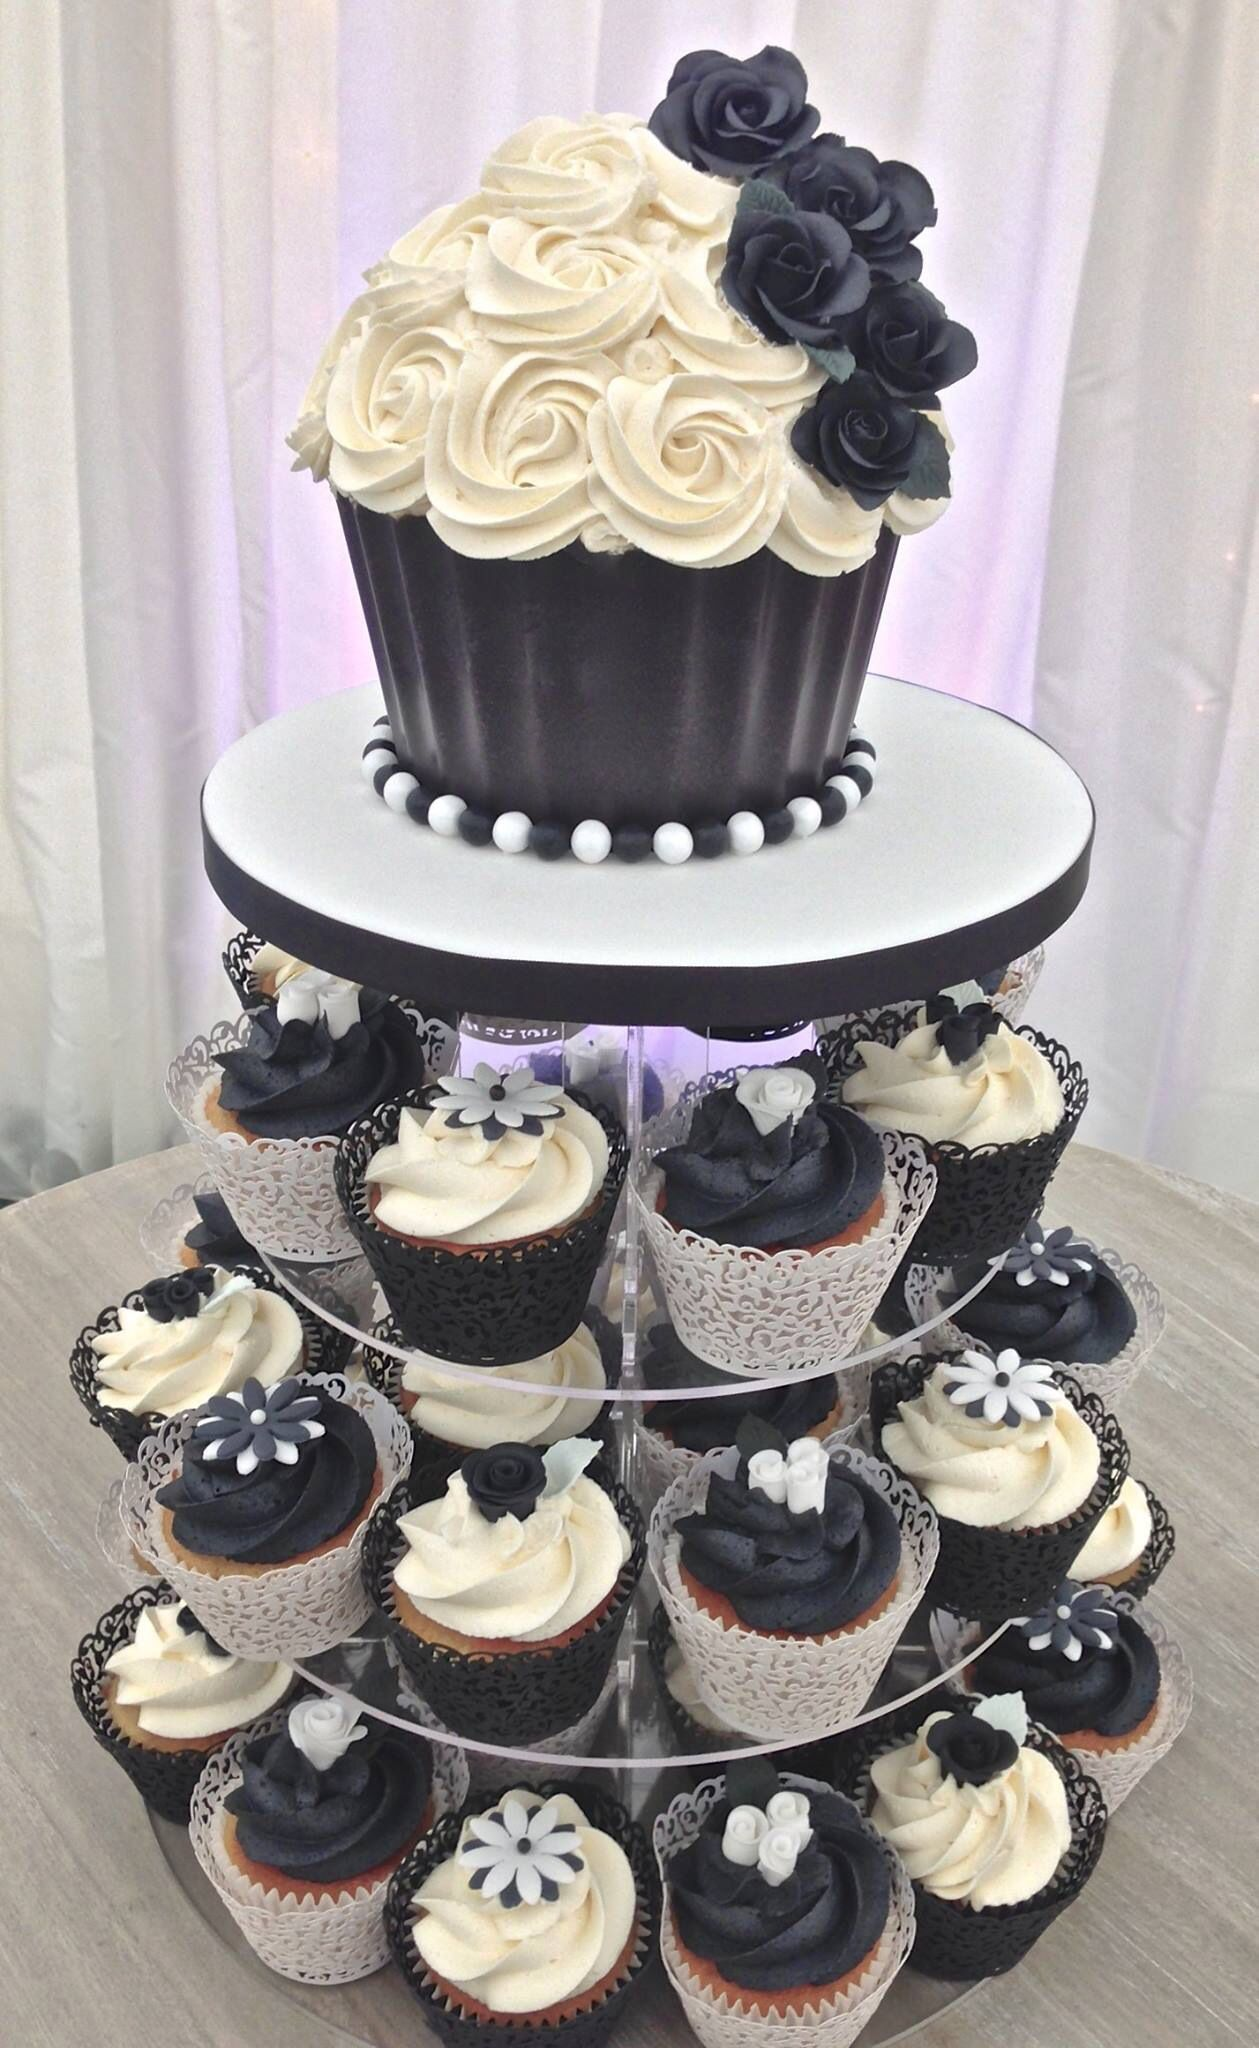 Black Amp White Wedding Cupcake Tower With Giant Cupcake Top